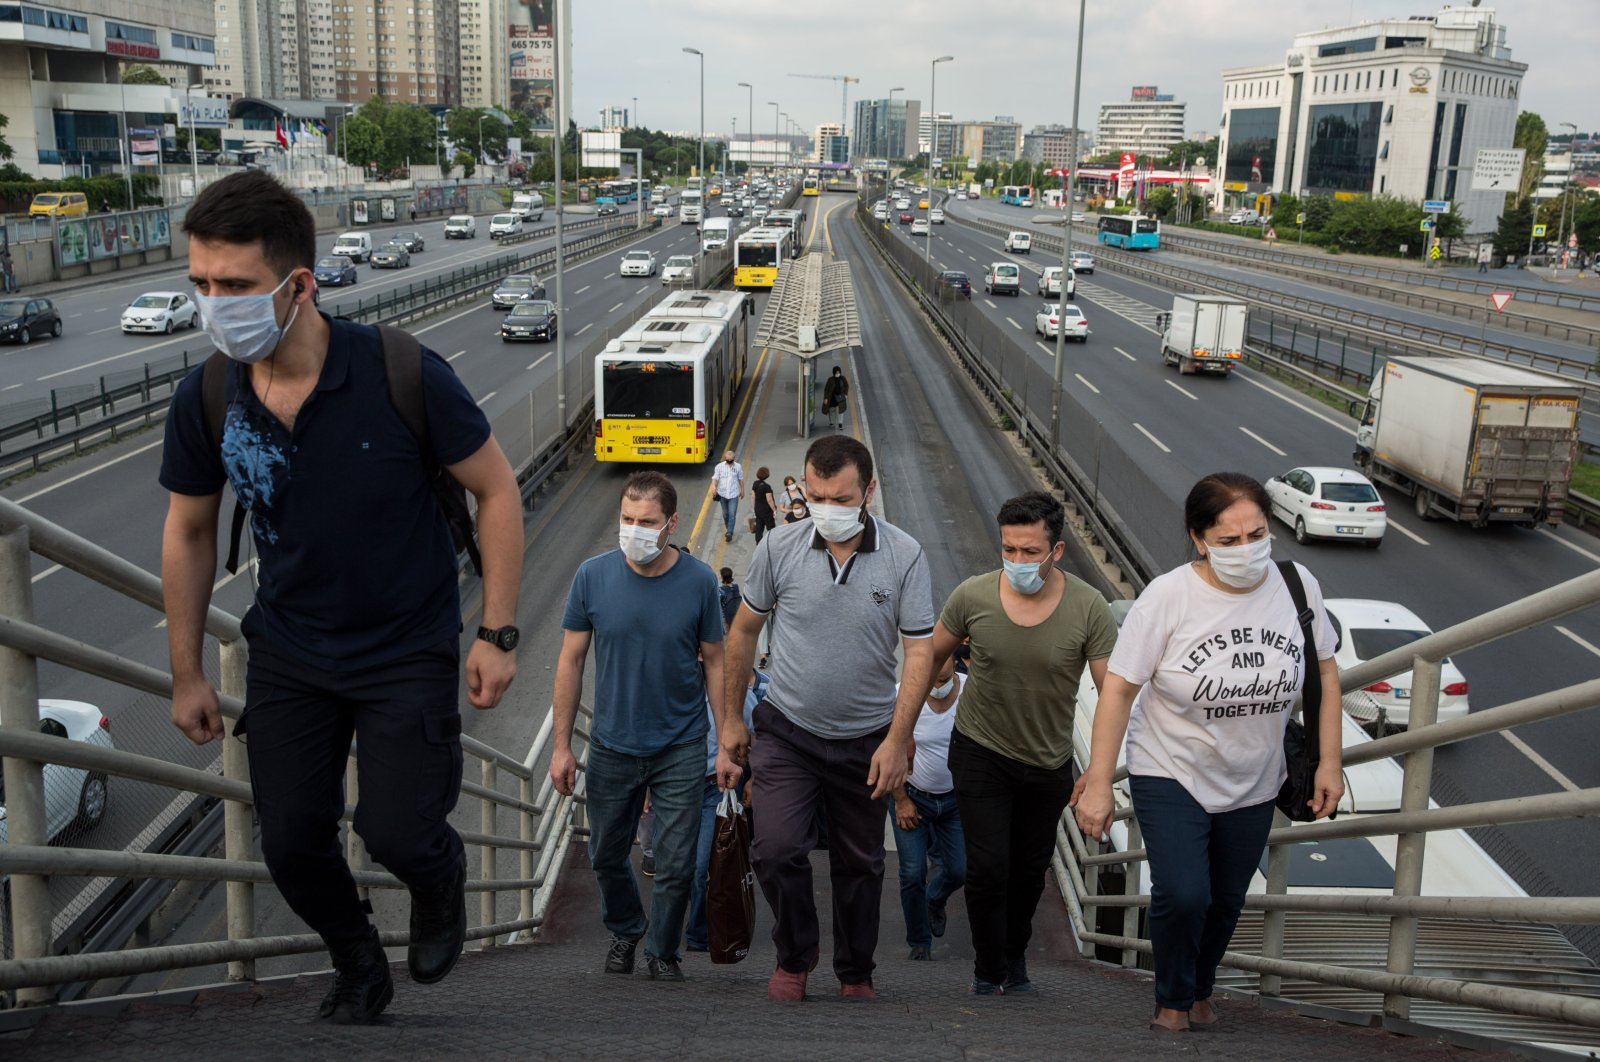 People wearing masks leave a metrobus station, in Istanbul, Turkey, June 22, 2020. (DHA Photo)